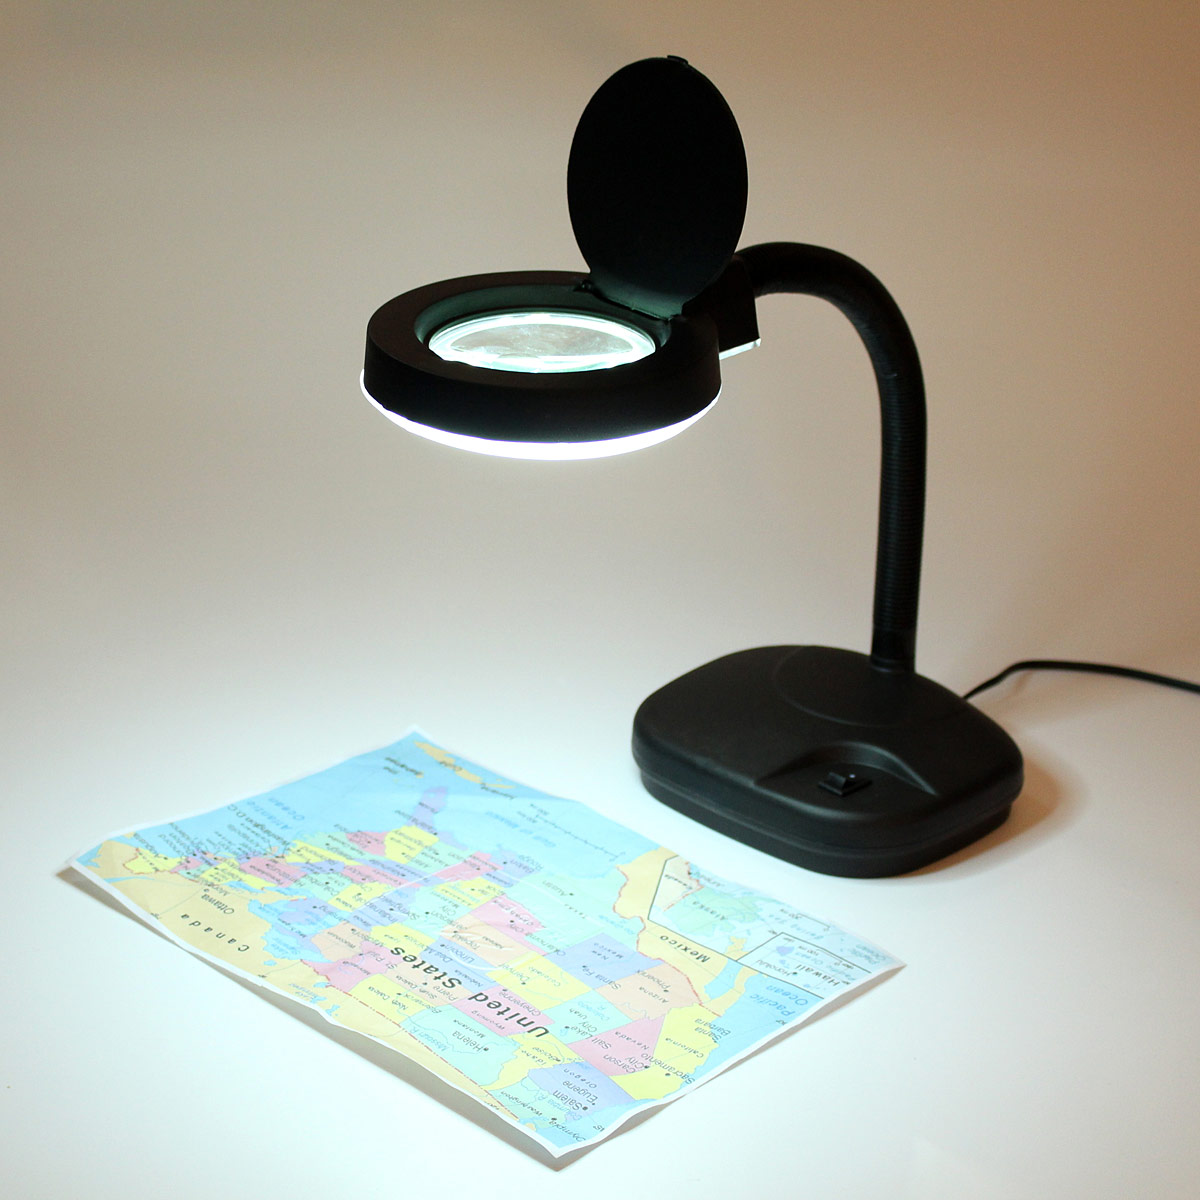 LED Magnifying Lens Glass Flexible Book Night Light Magnifier Desk Table Lamp for Students Officers Watch Worker Black 220v 10x desk clip on led illuminated green optical big magnifying glass led lamp folding stand large magnifier with led lights